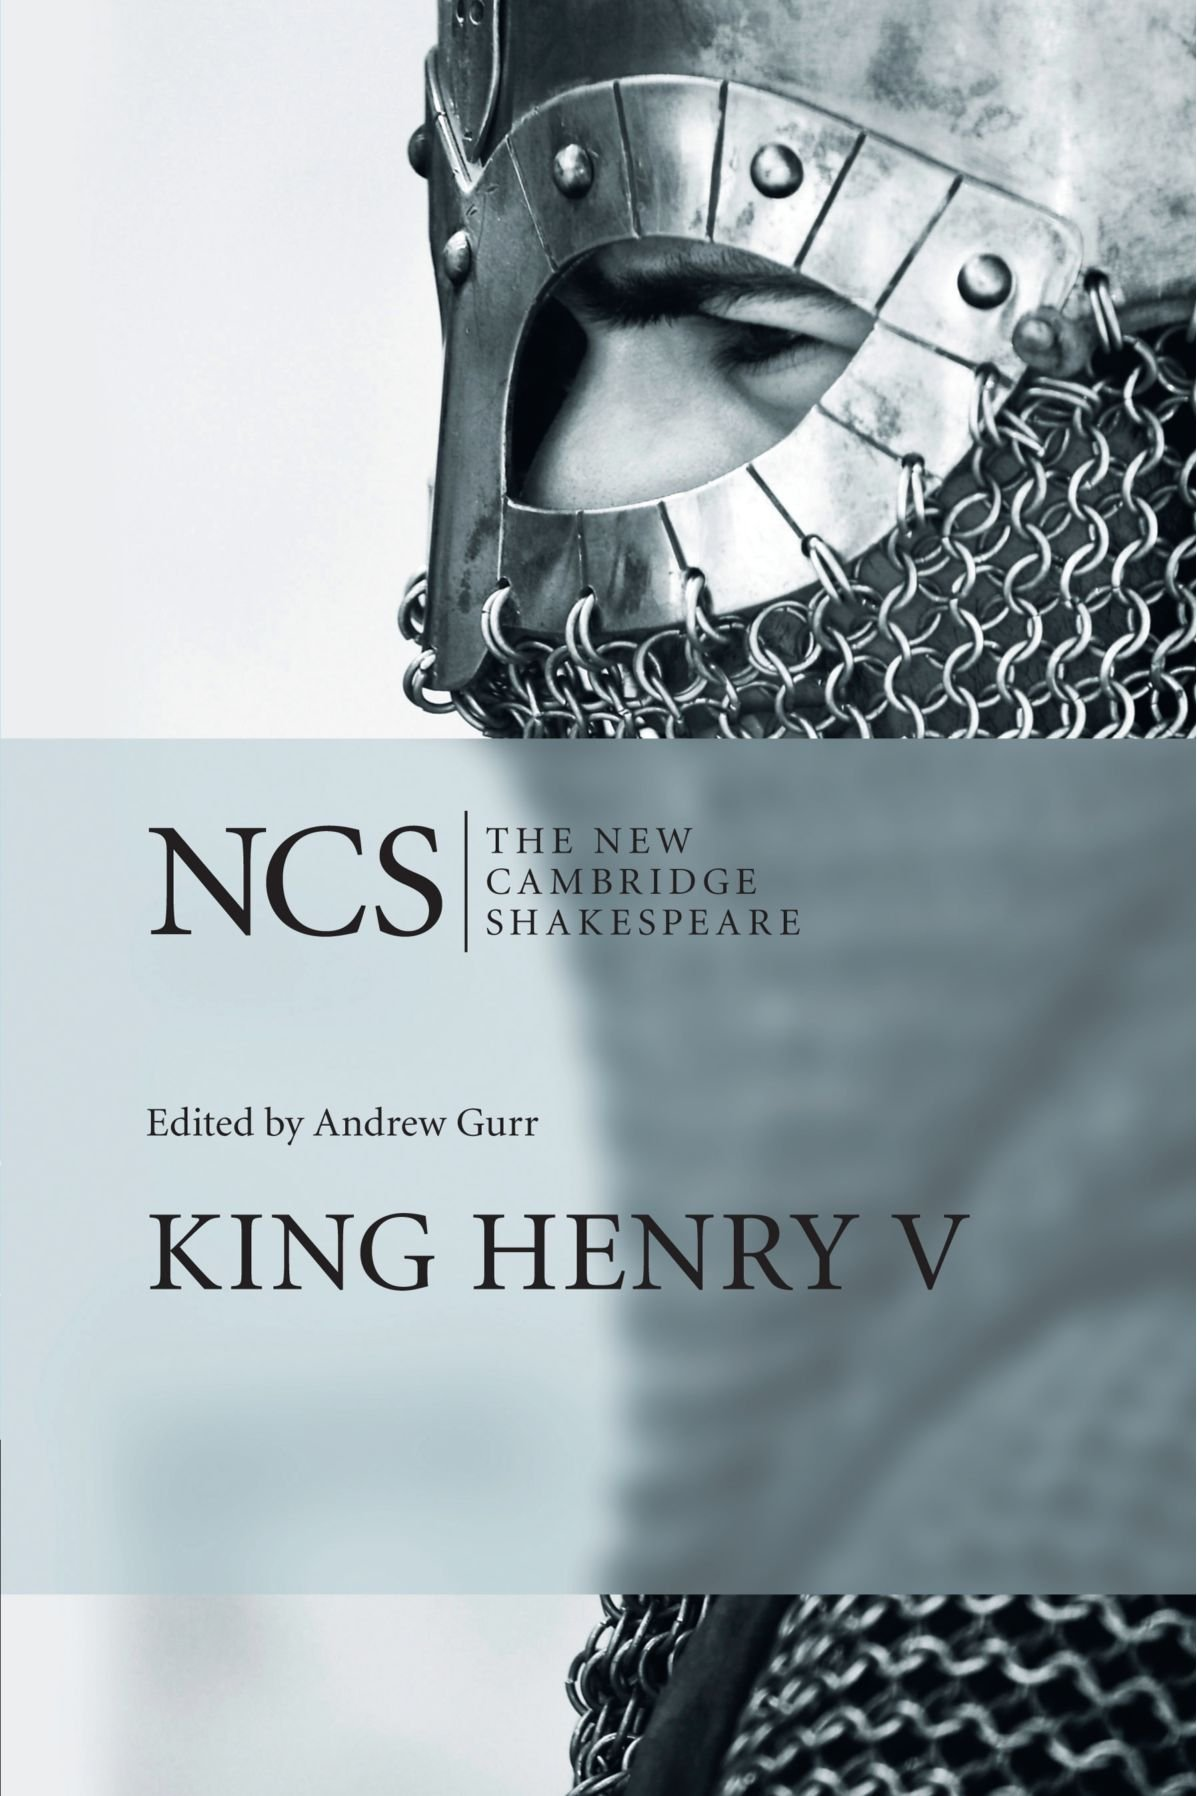 king henry v the new cambridge shakespeare amazon co uk andrew  king henry v the new cambridge shakespeare amazon co uk andrew gurr 9780521612647 books